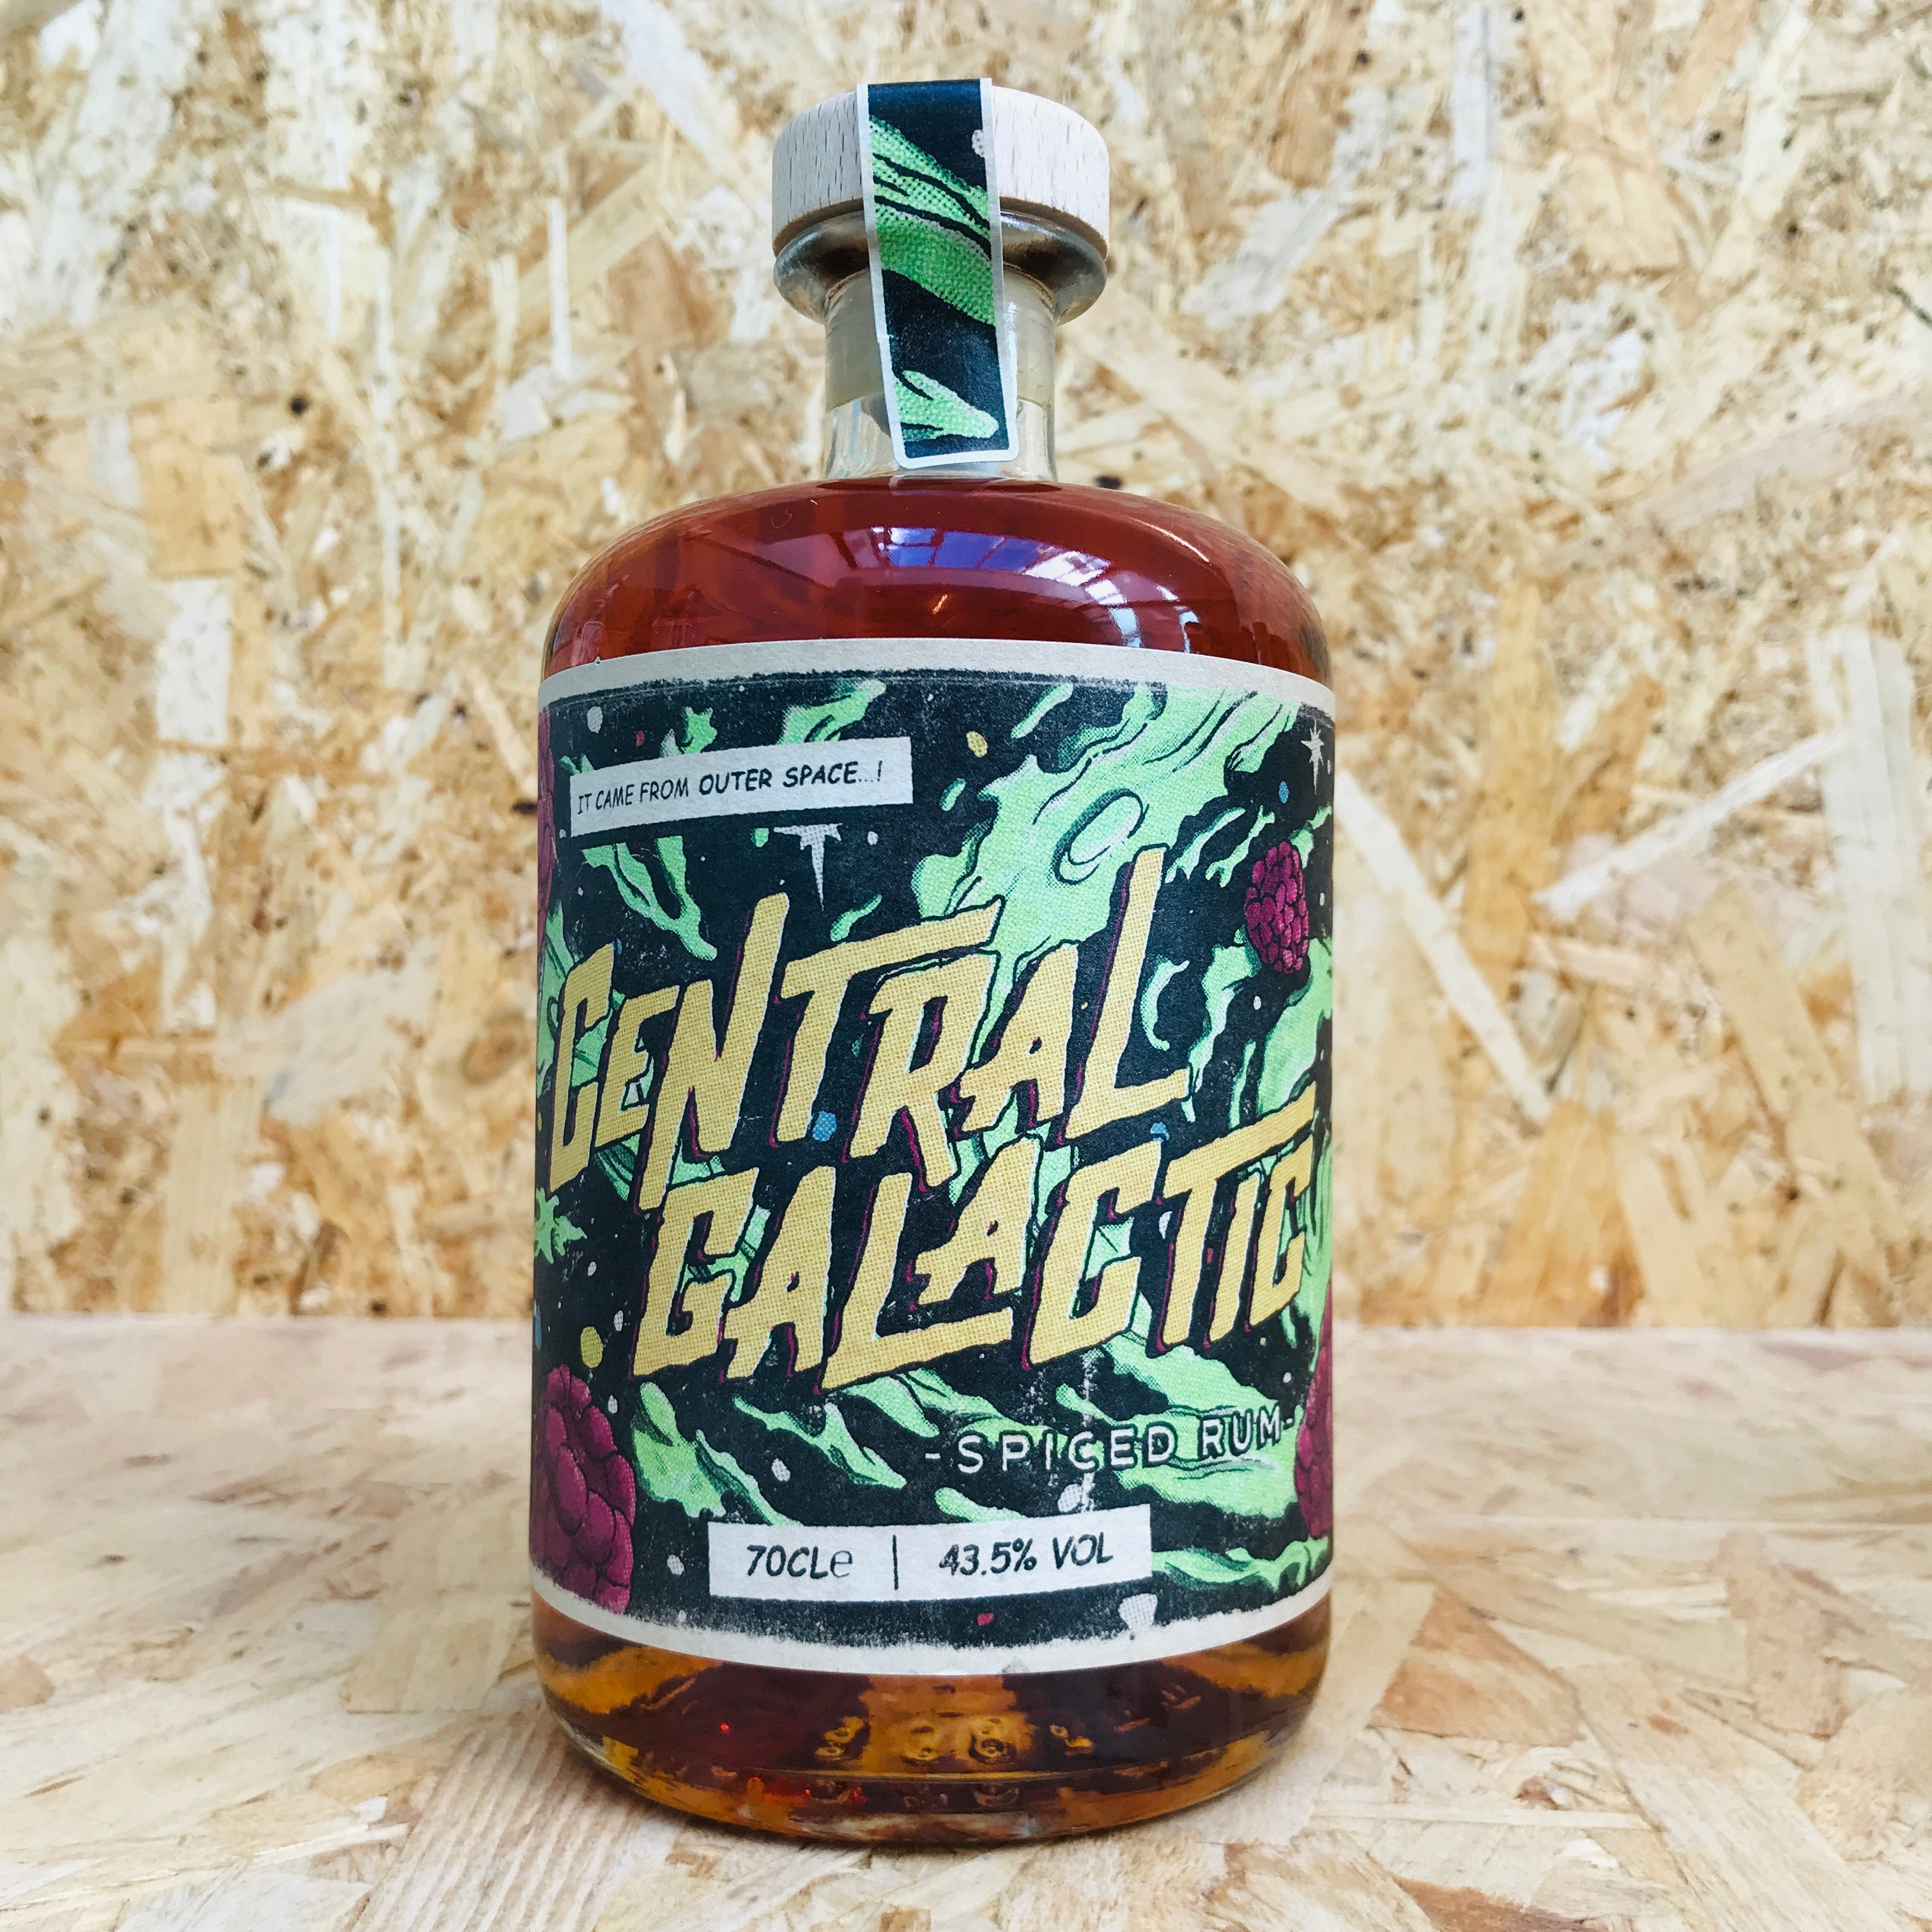 Central Galactic Spiced Rum